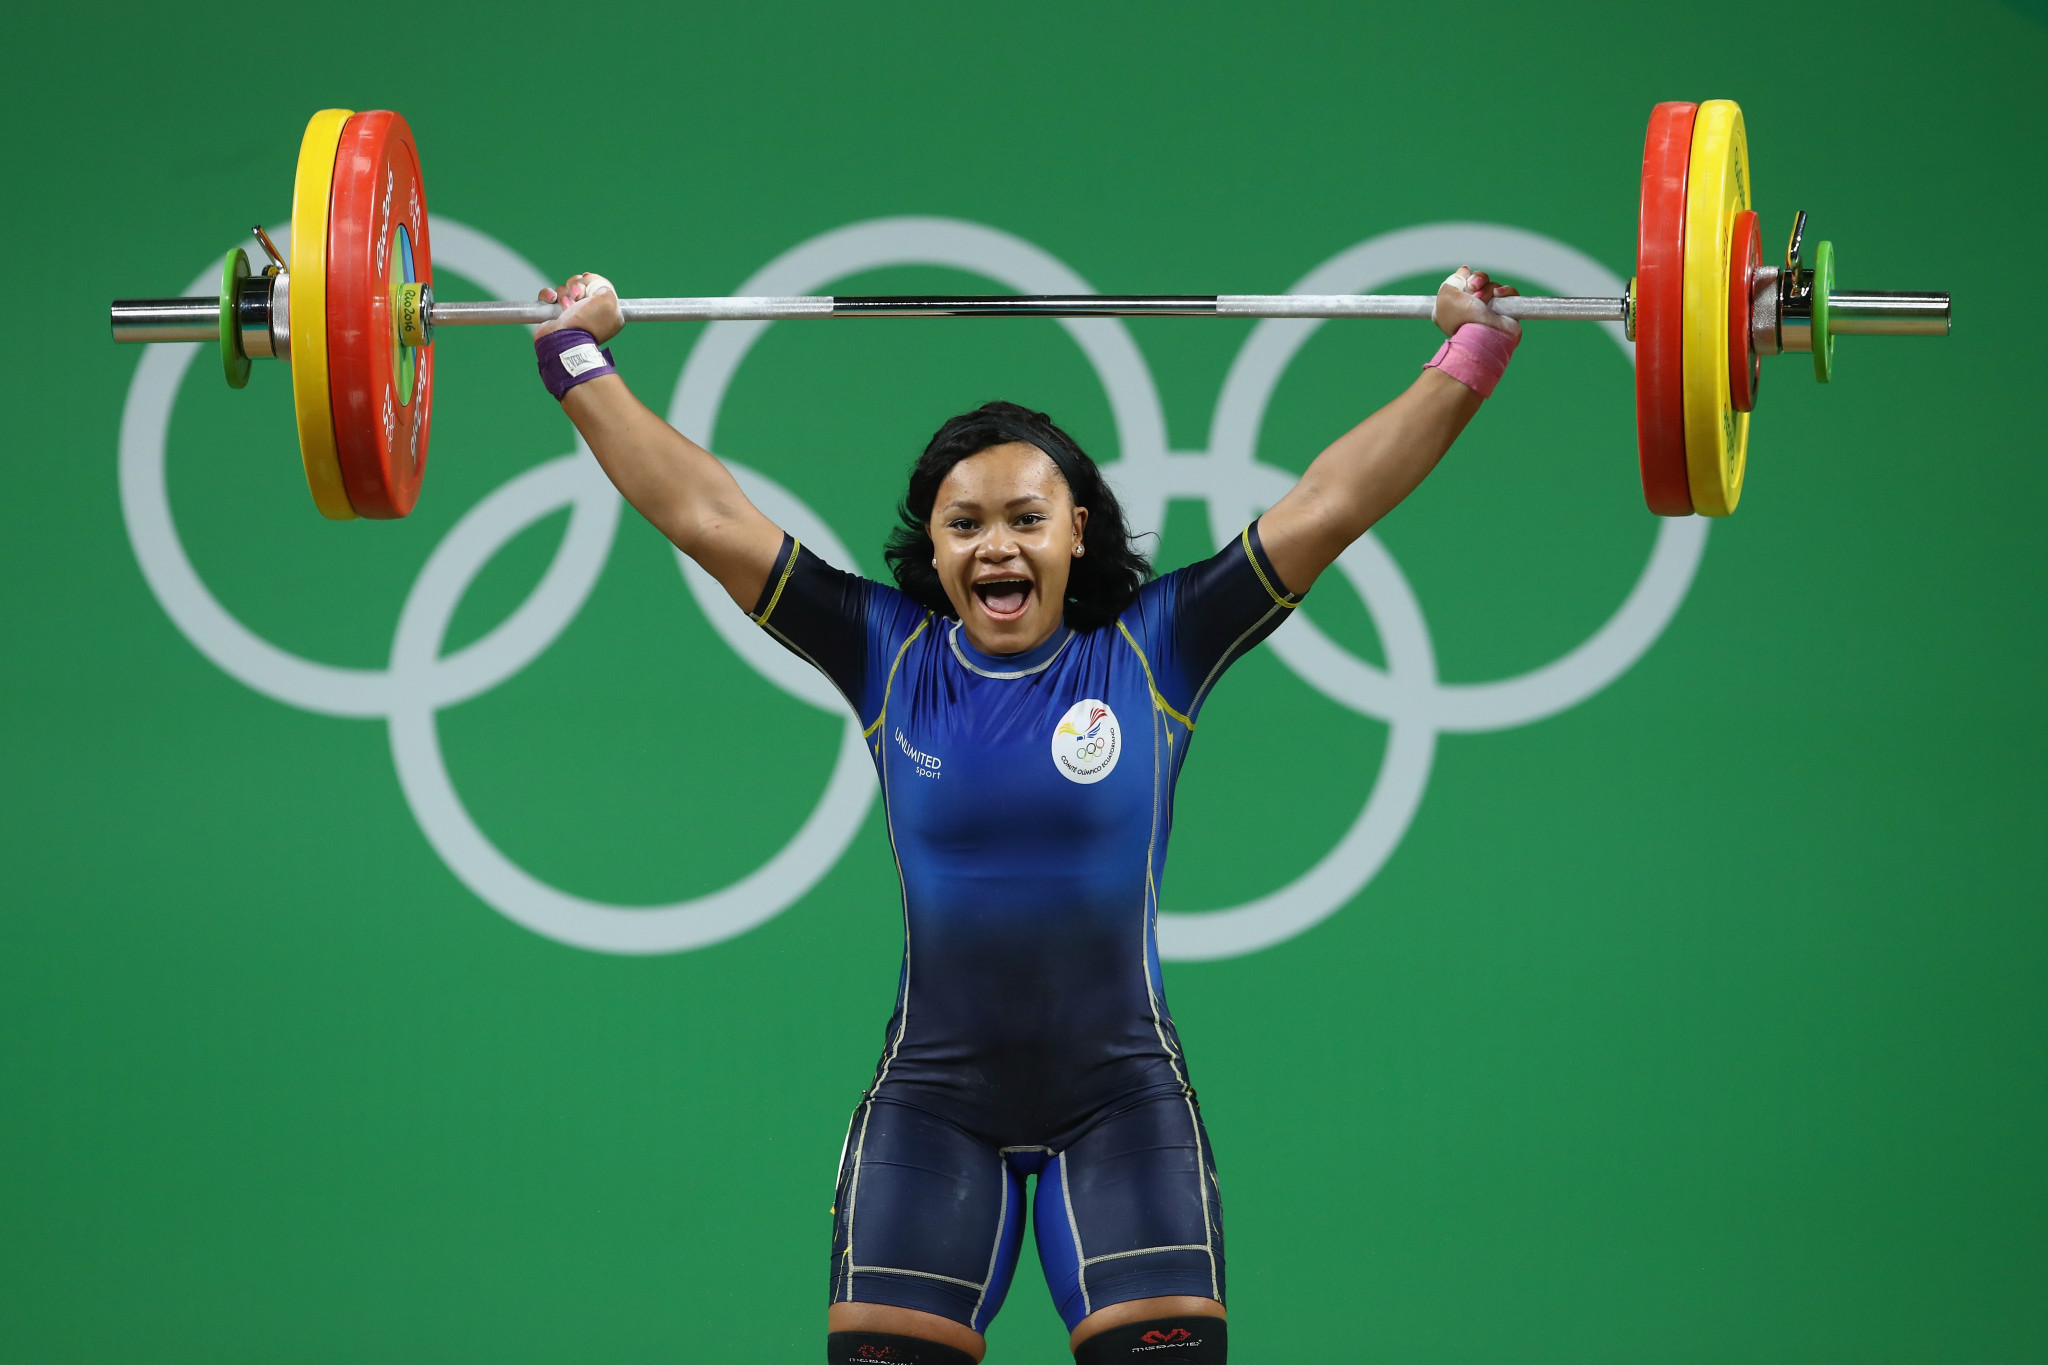 Neisi Patricia Dajomes Barrera, a Rio 2016 Olympian, won three gold medals in Tashkent ©Getty Images